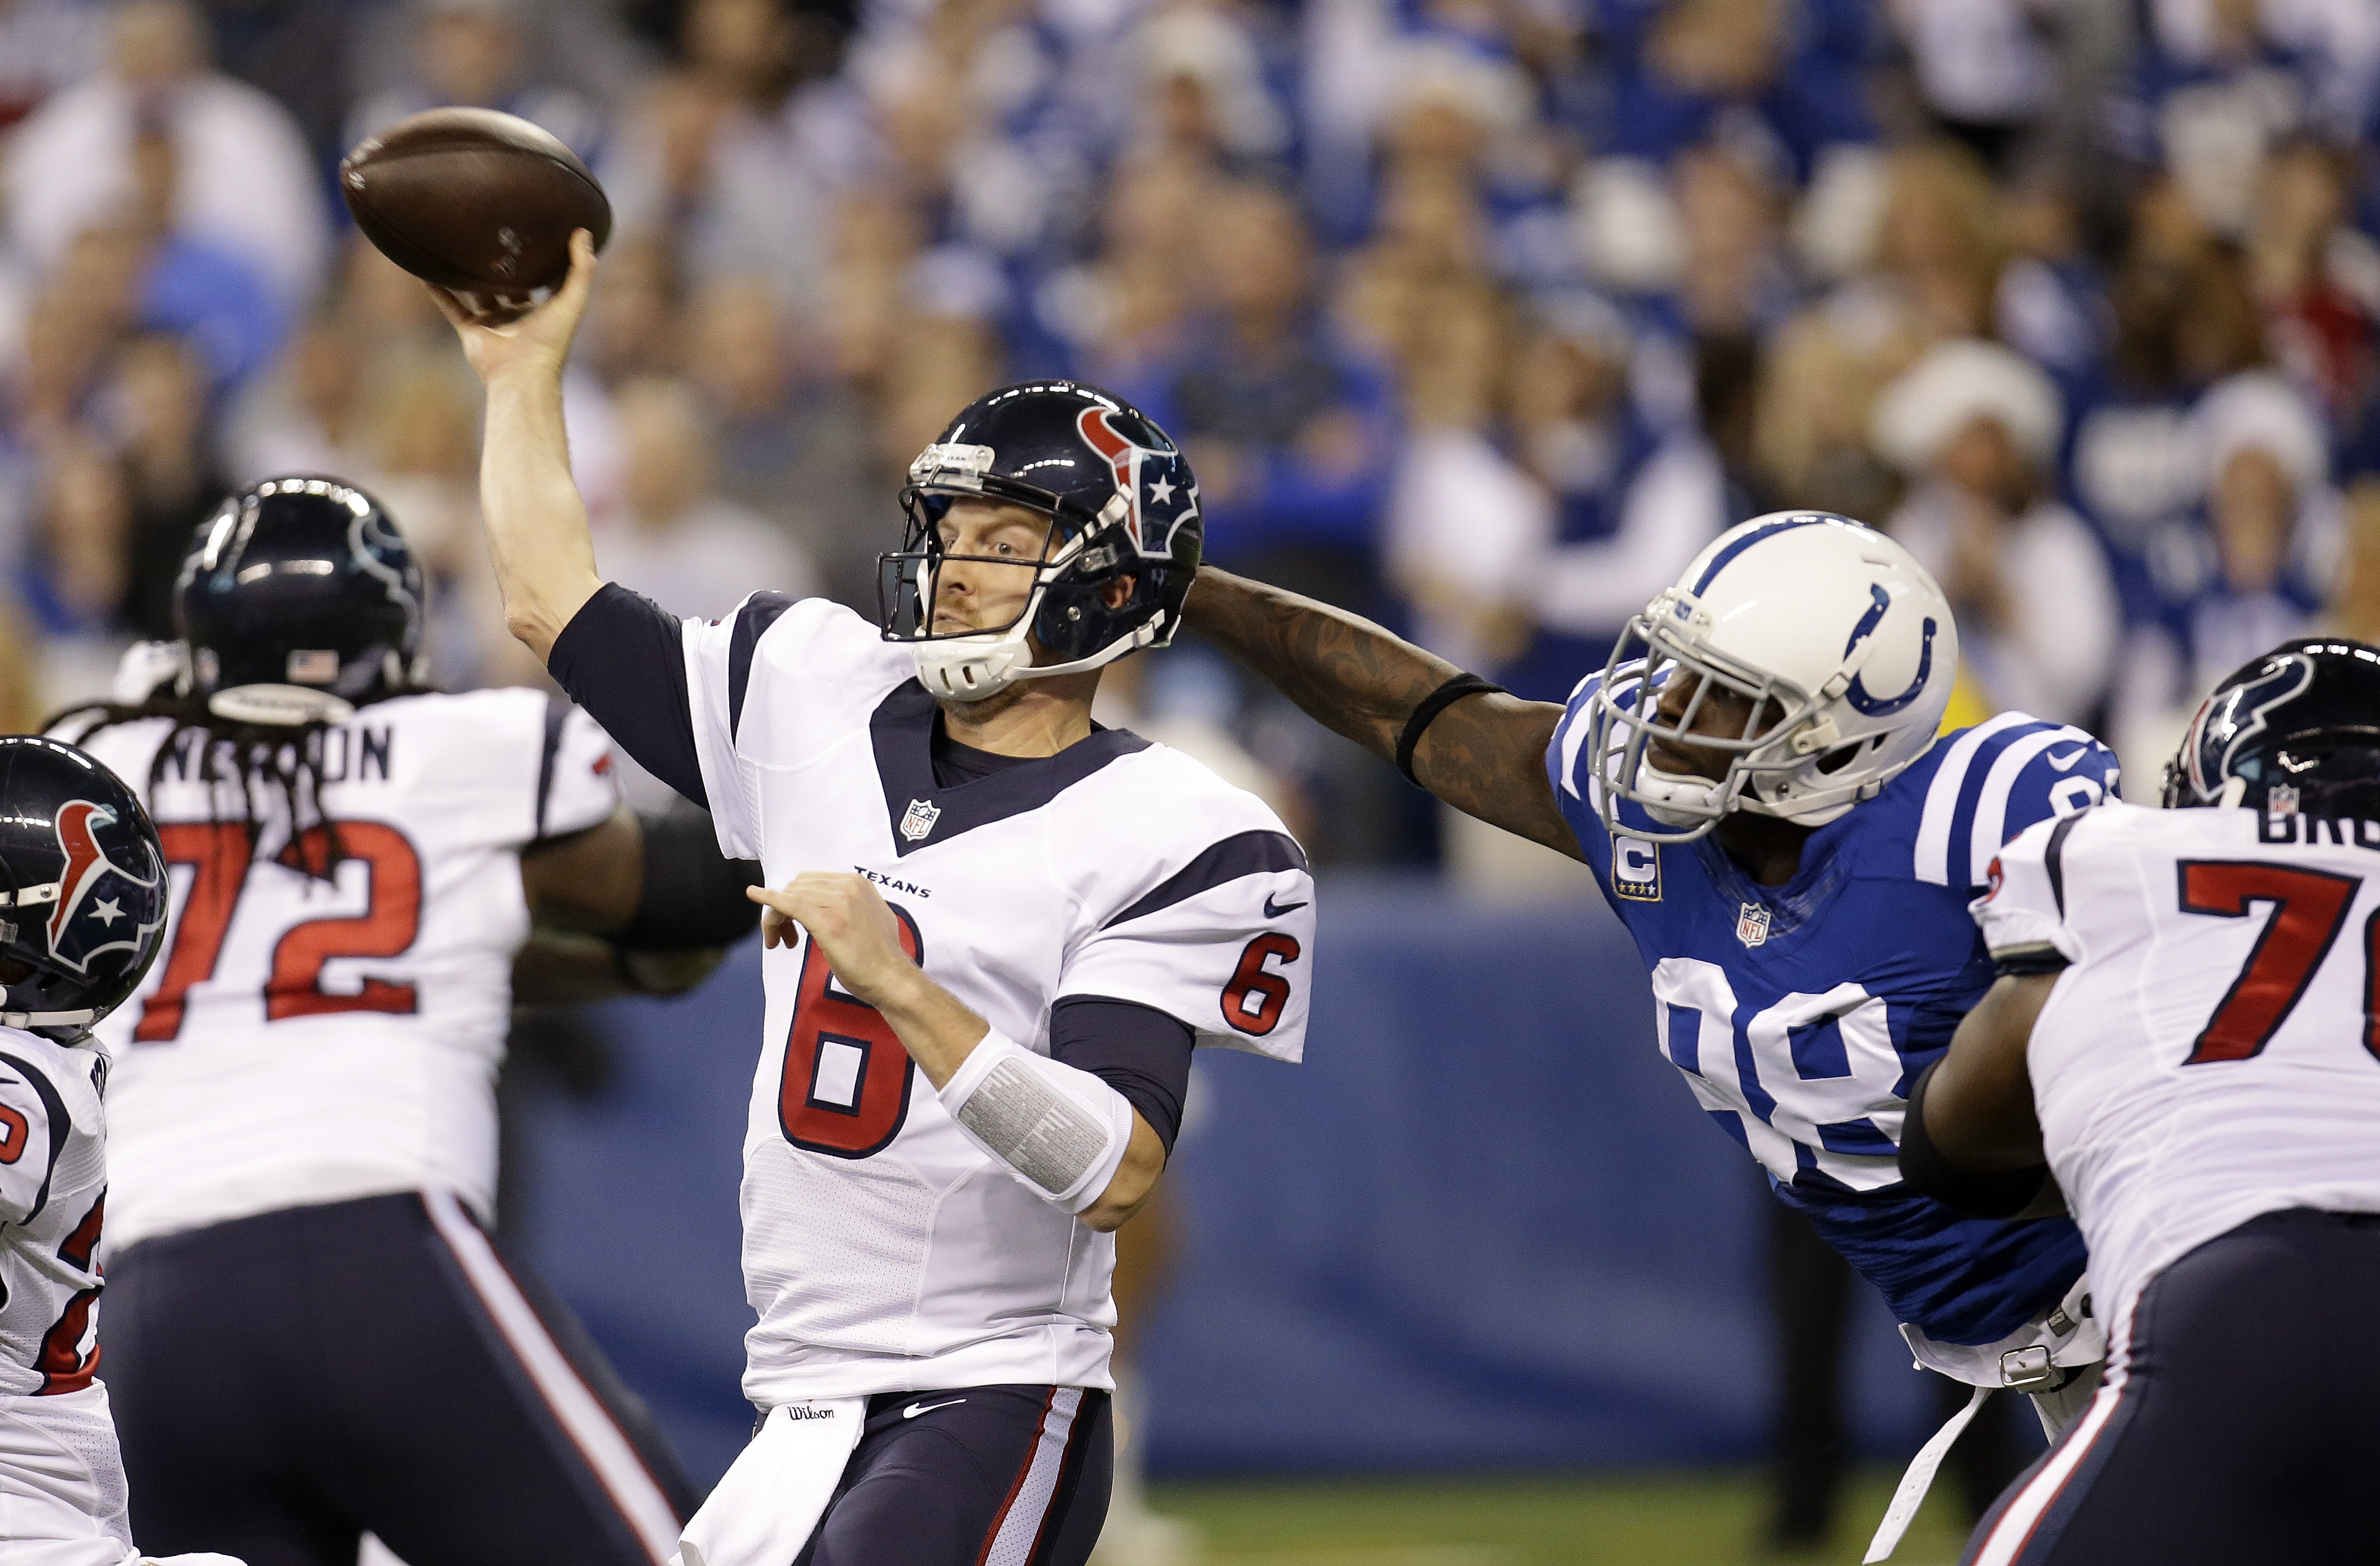 Houston Texans' T.J. Yates (6) throws while being pressured by Indianapolis Colts' Robert Mathis (98) during the first half of an NFL football game, Sunday, Dec. 20, 2015, in Indianapolis. (AP Photo/AJ Mast)